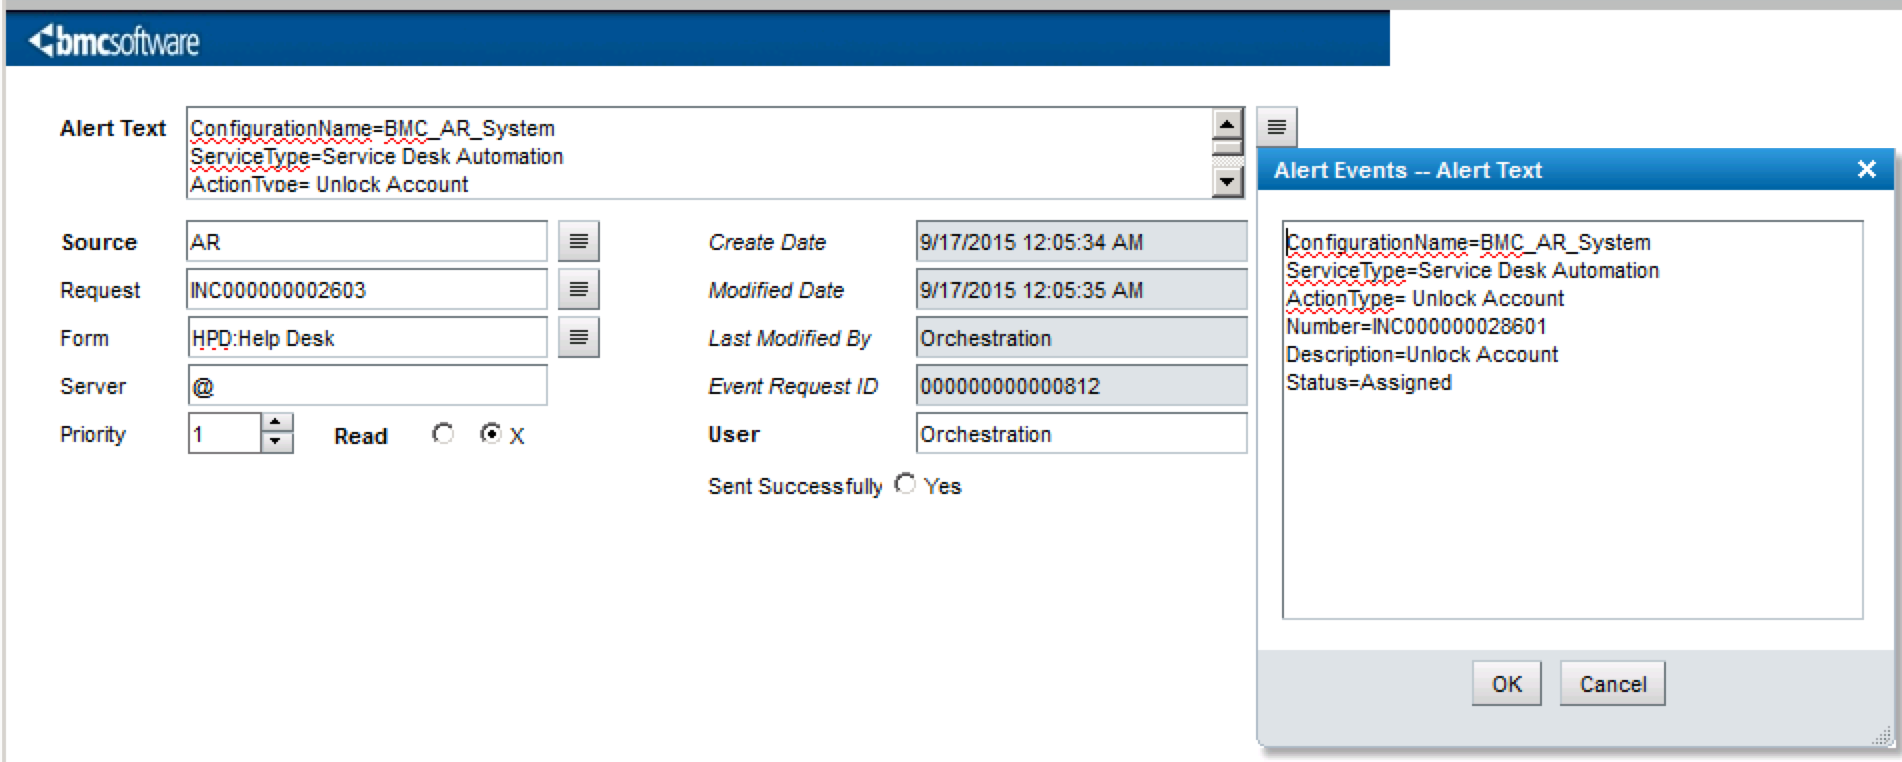 Getting started with BMC Service Desk Automation run book